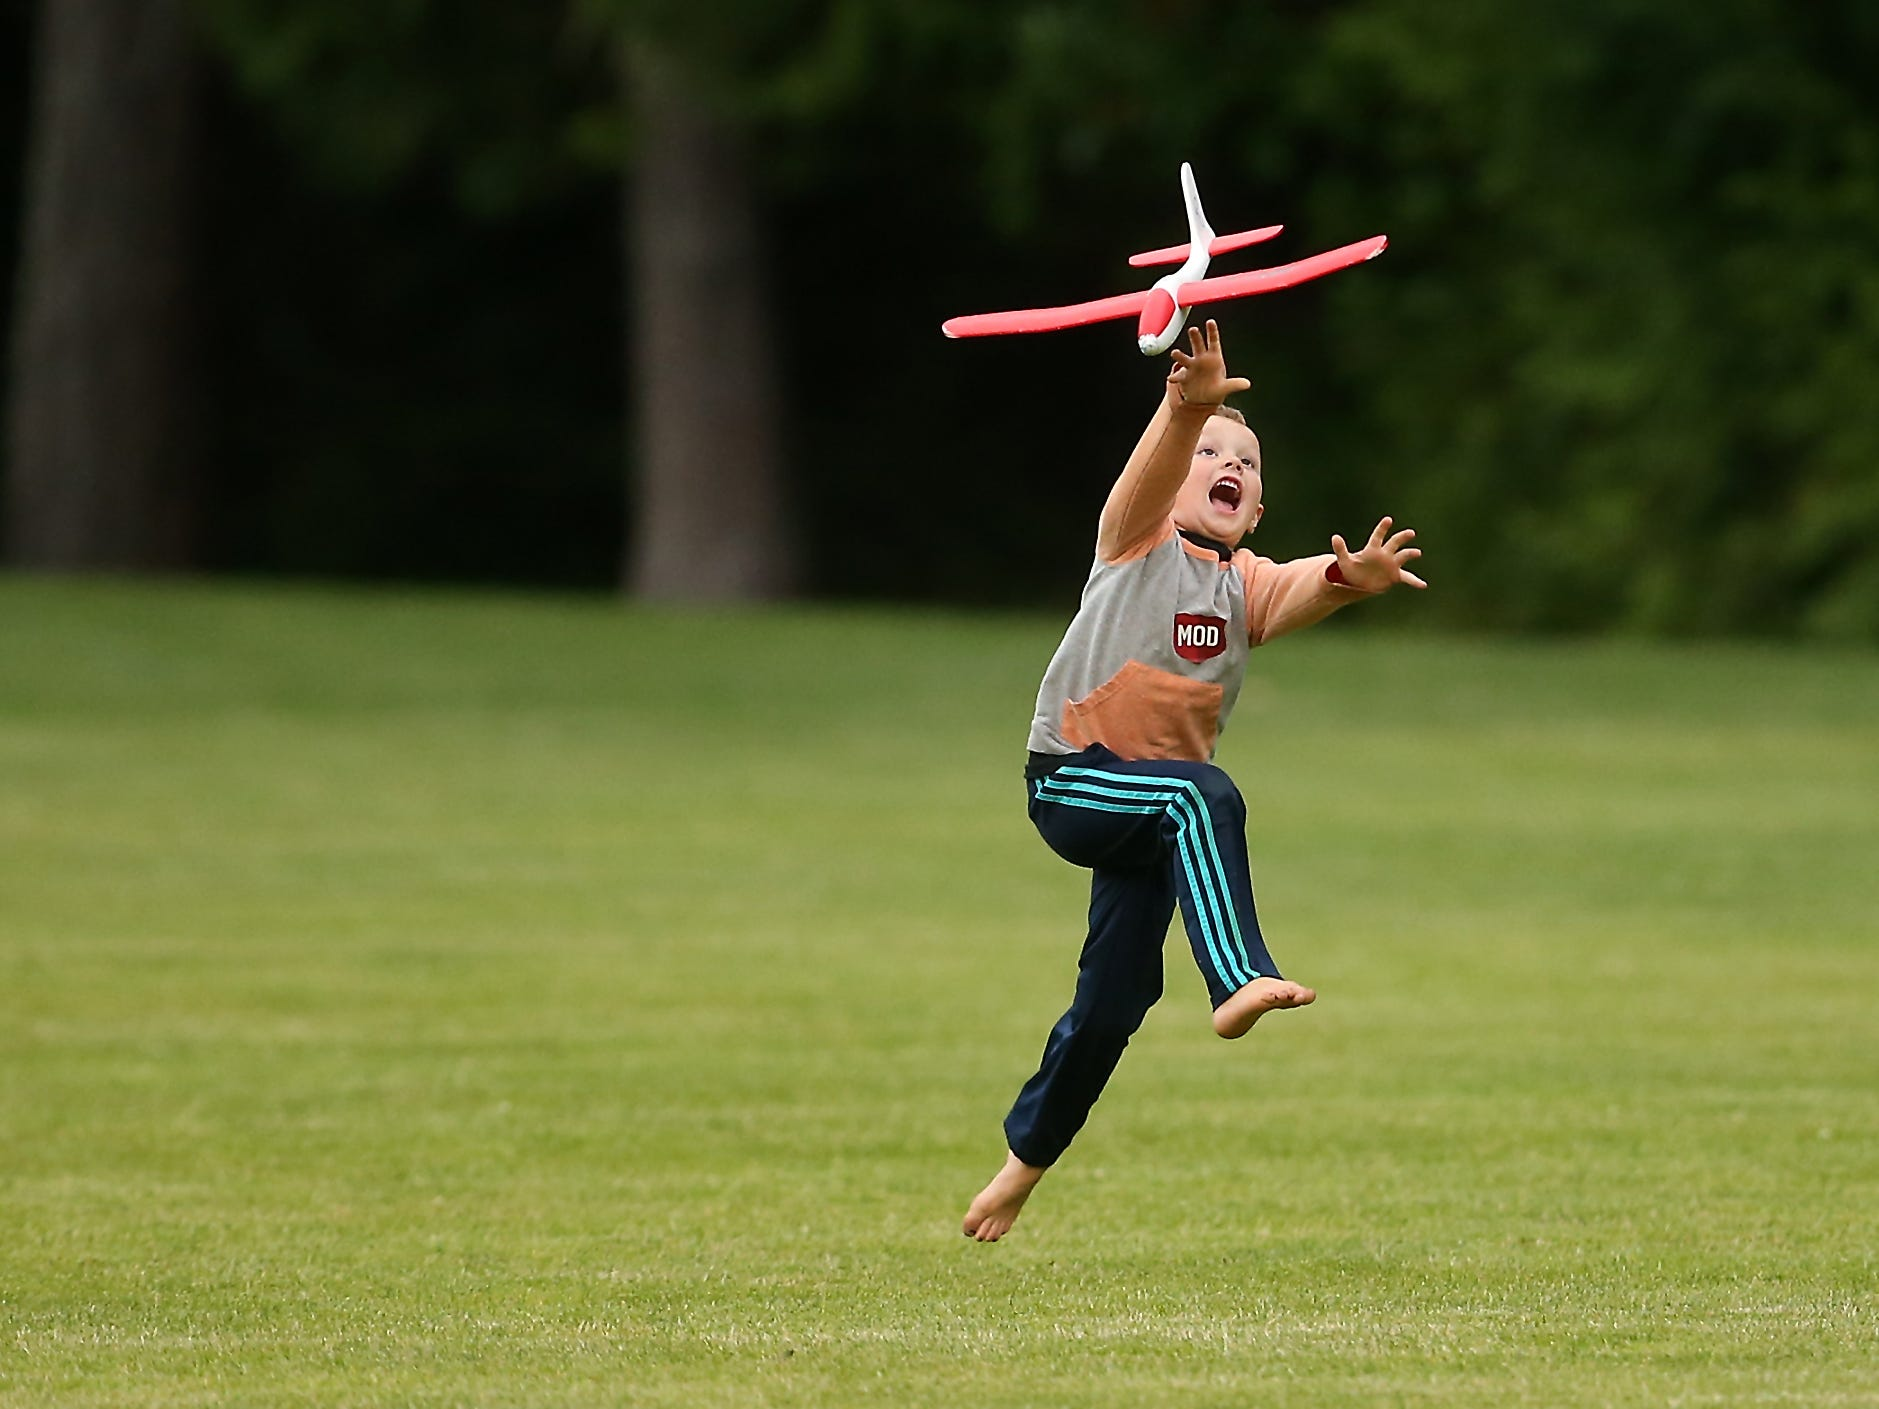 Raleigh Danger Anderson, 5, launches his glider into the air with a running leap while he and brother Stryker, 8, fly gliders with their grandmother Janet at Gordon Field in Bremerton, Washington on Wednesday, June 27, 2018.